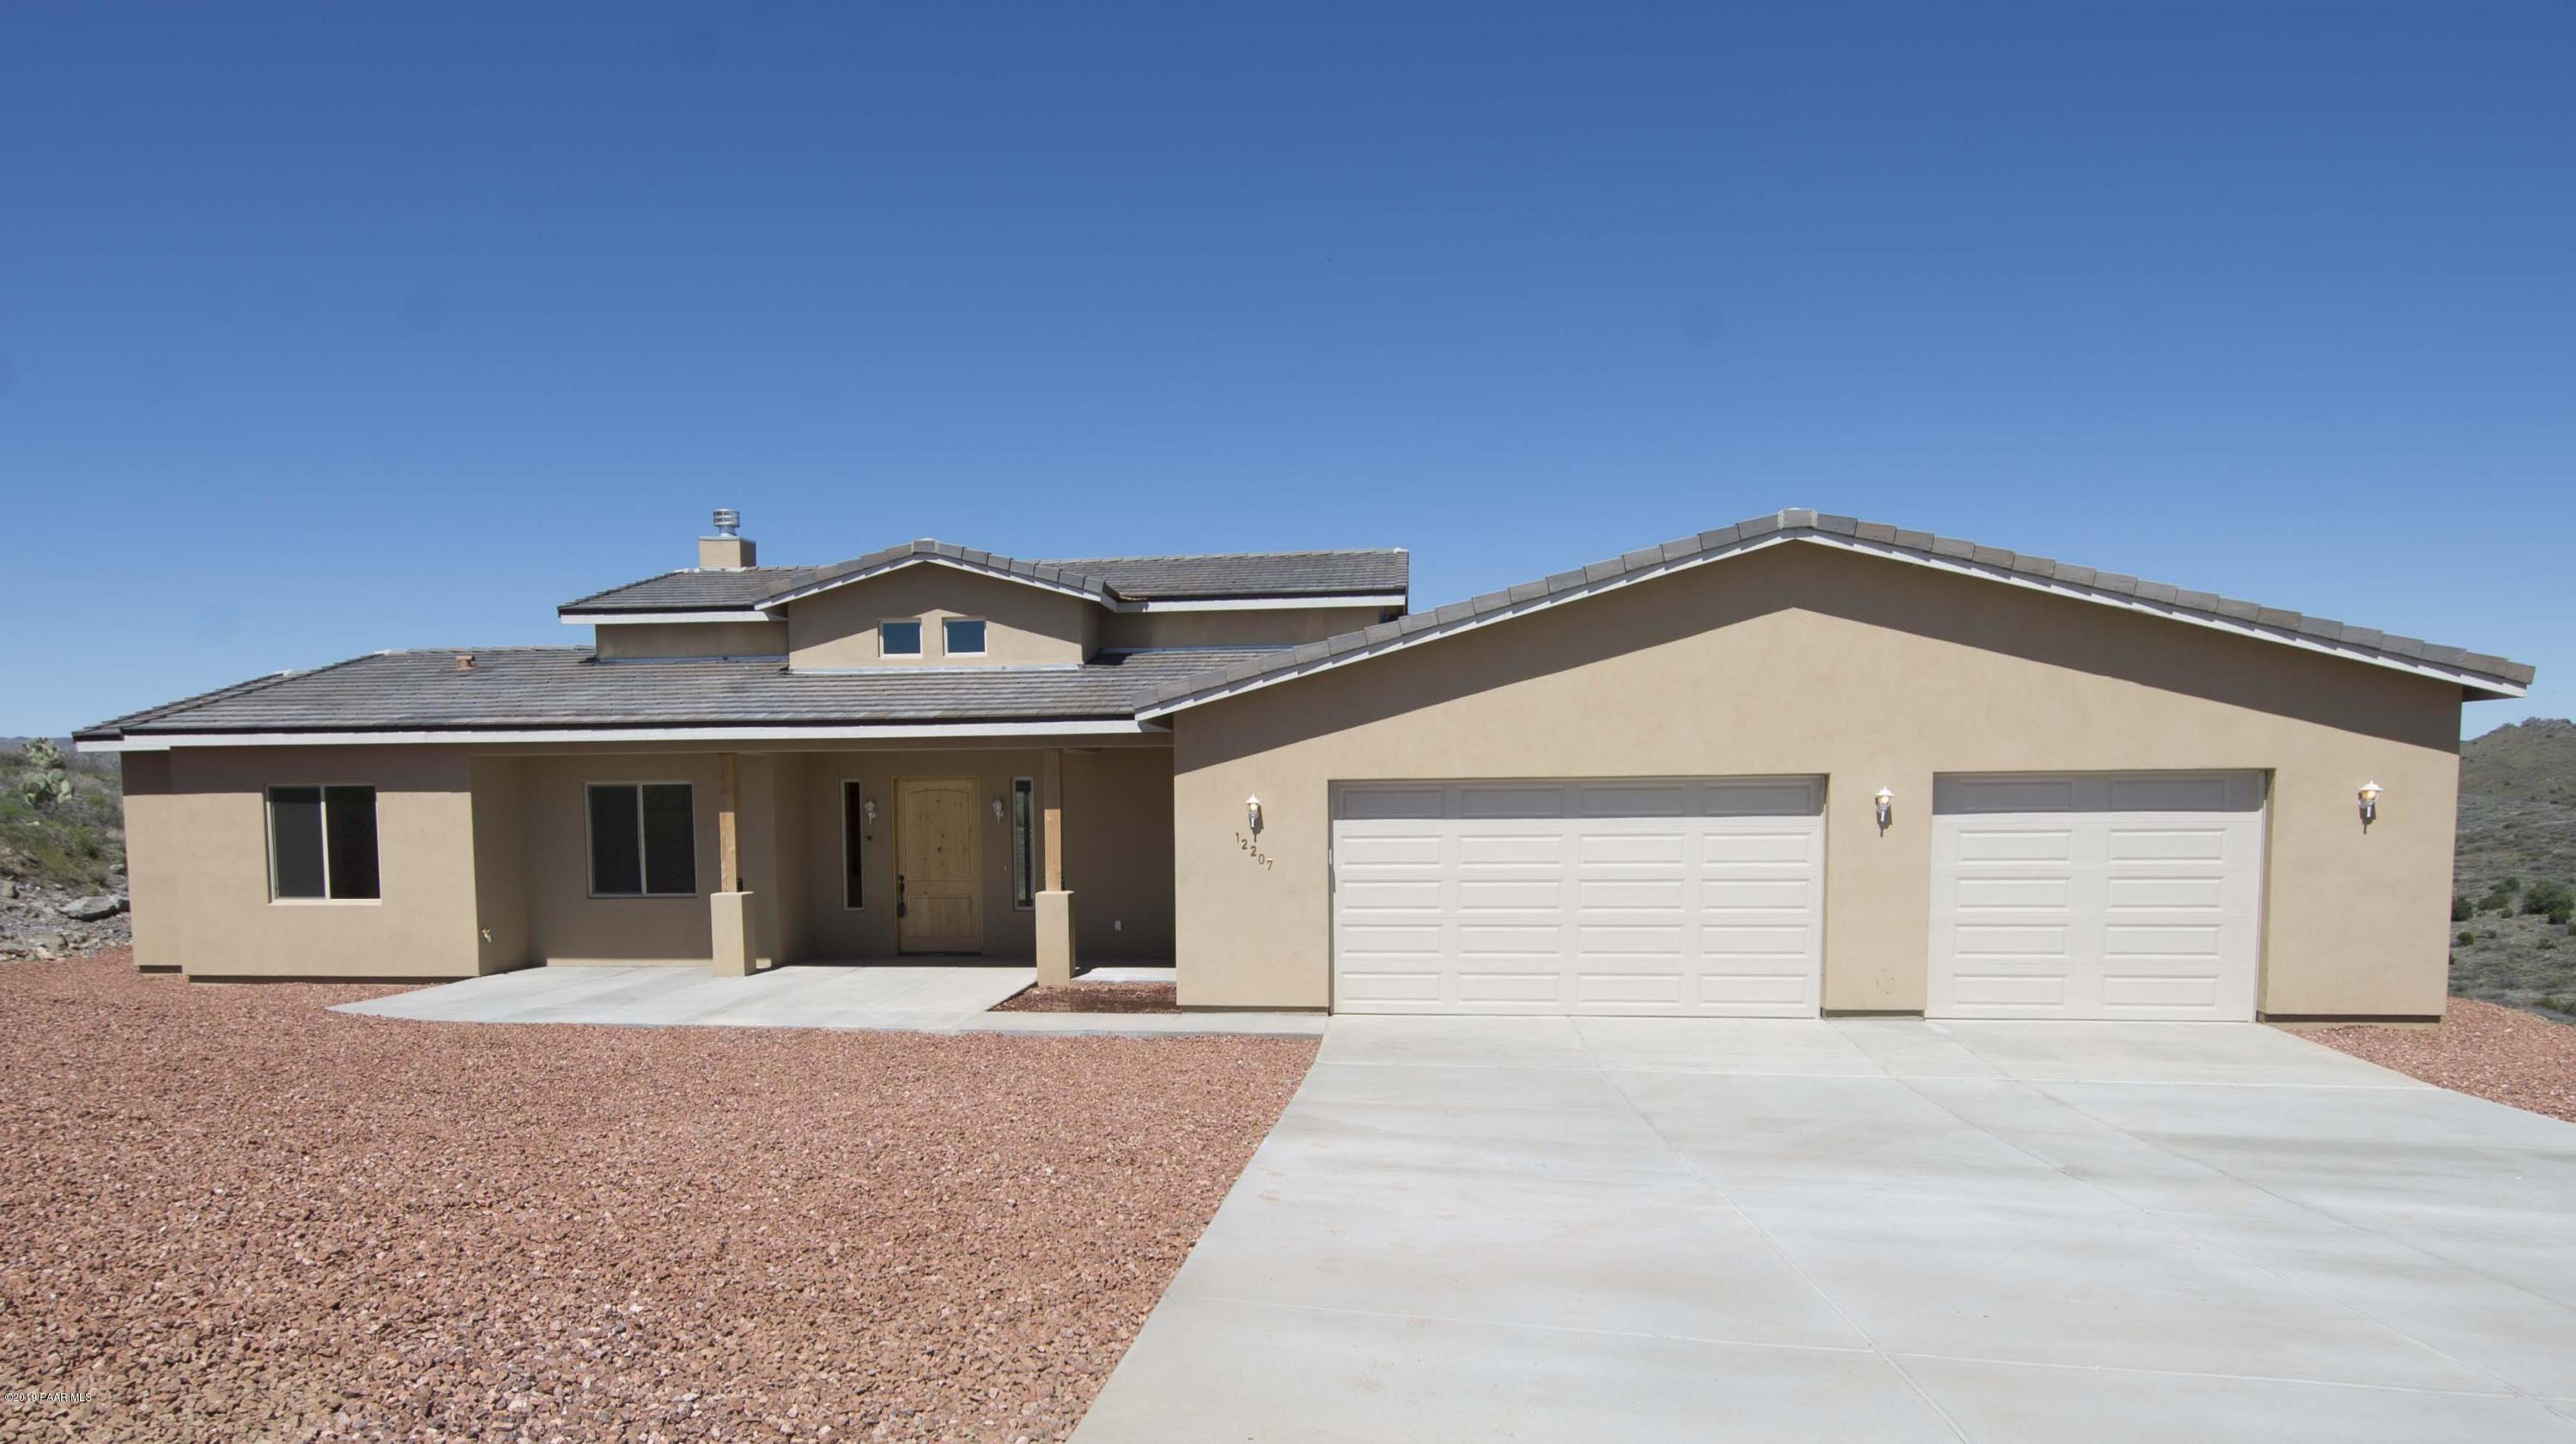 Photo of 12270 Countryside, Mayer, AZ 86333